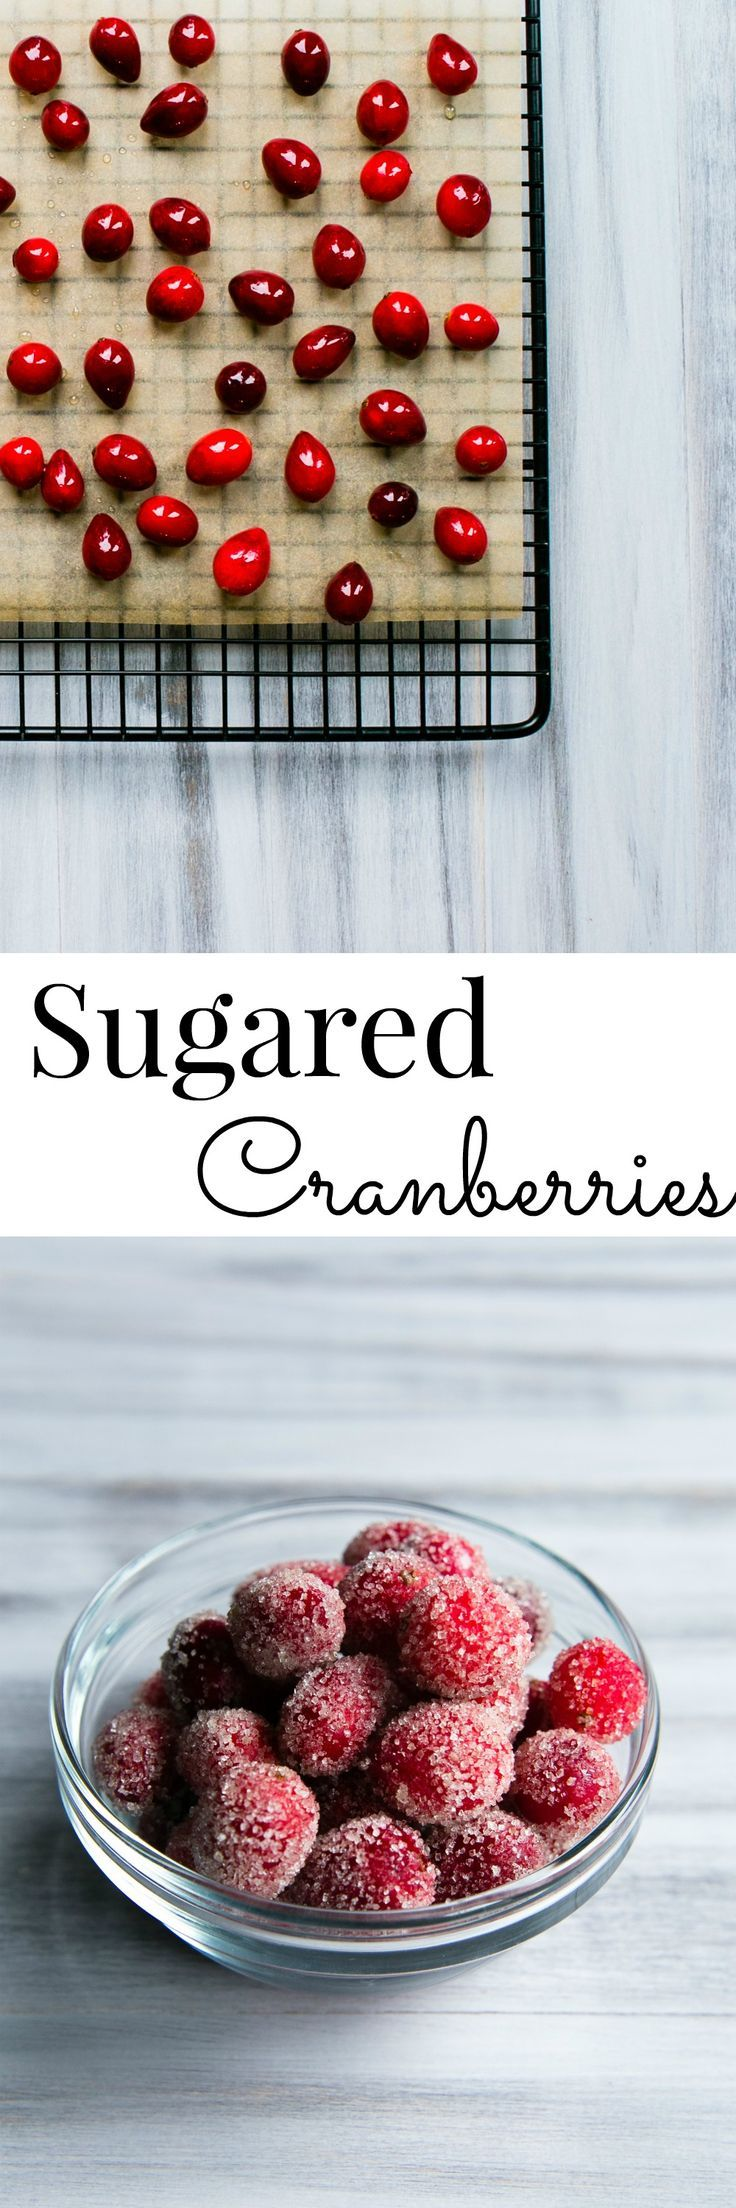 So pretty for the holidays! Sugared Cranberries! Easy and so delicious; use as a garnish or a snack | #Holiday #SugaredCranberries #Candy #Recipe